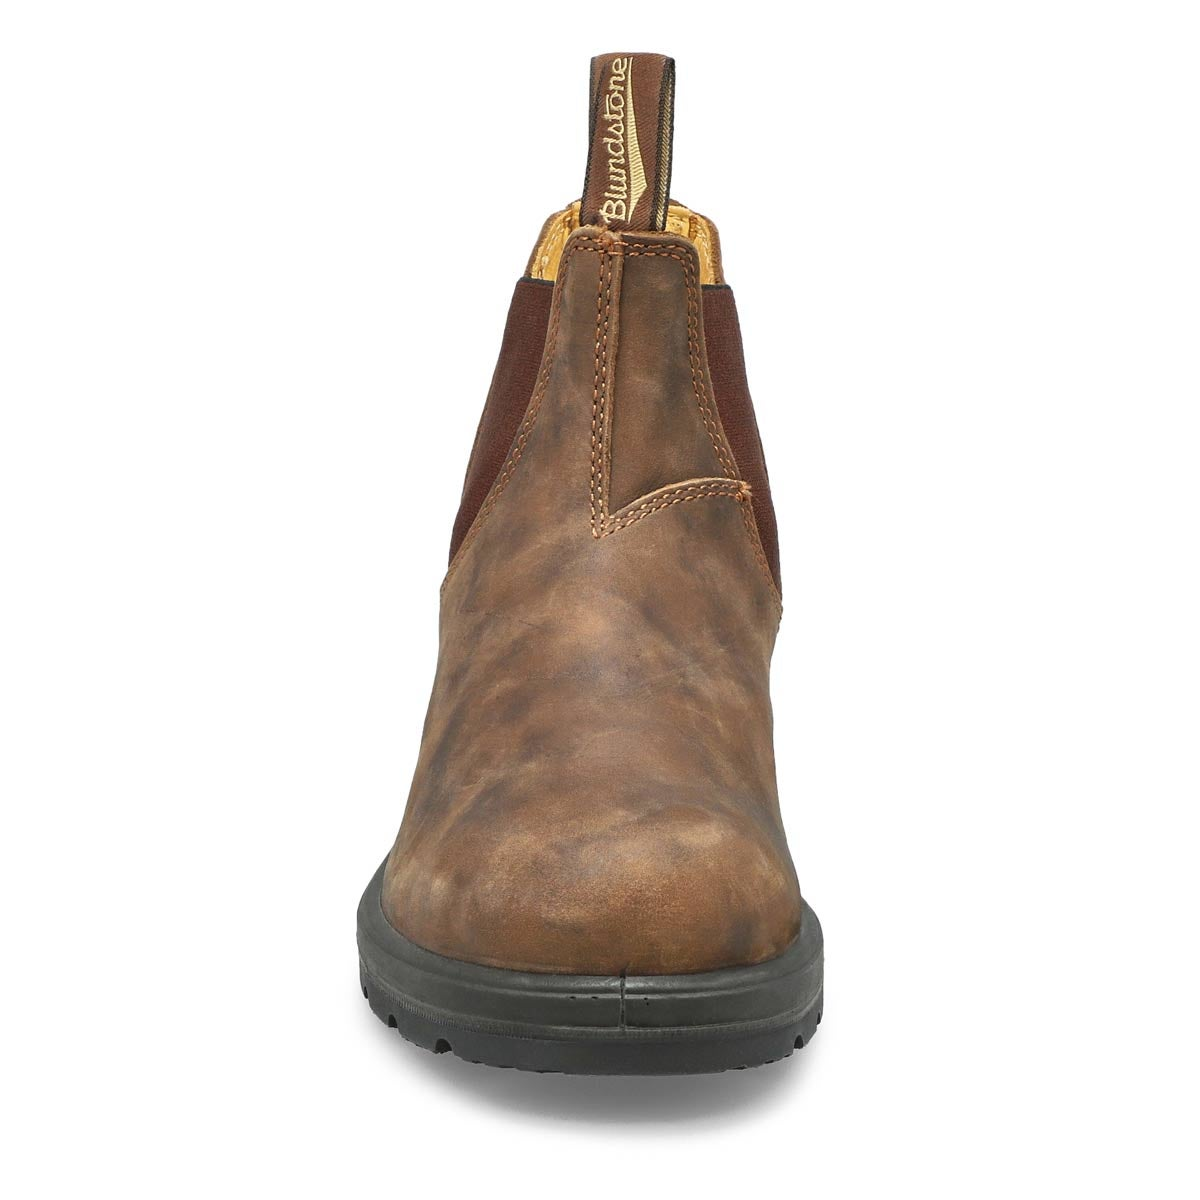 Botte Original, brun rustique, unisexe